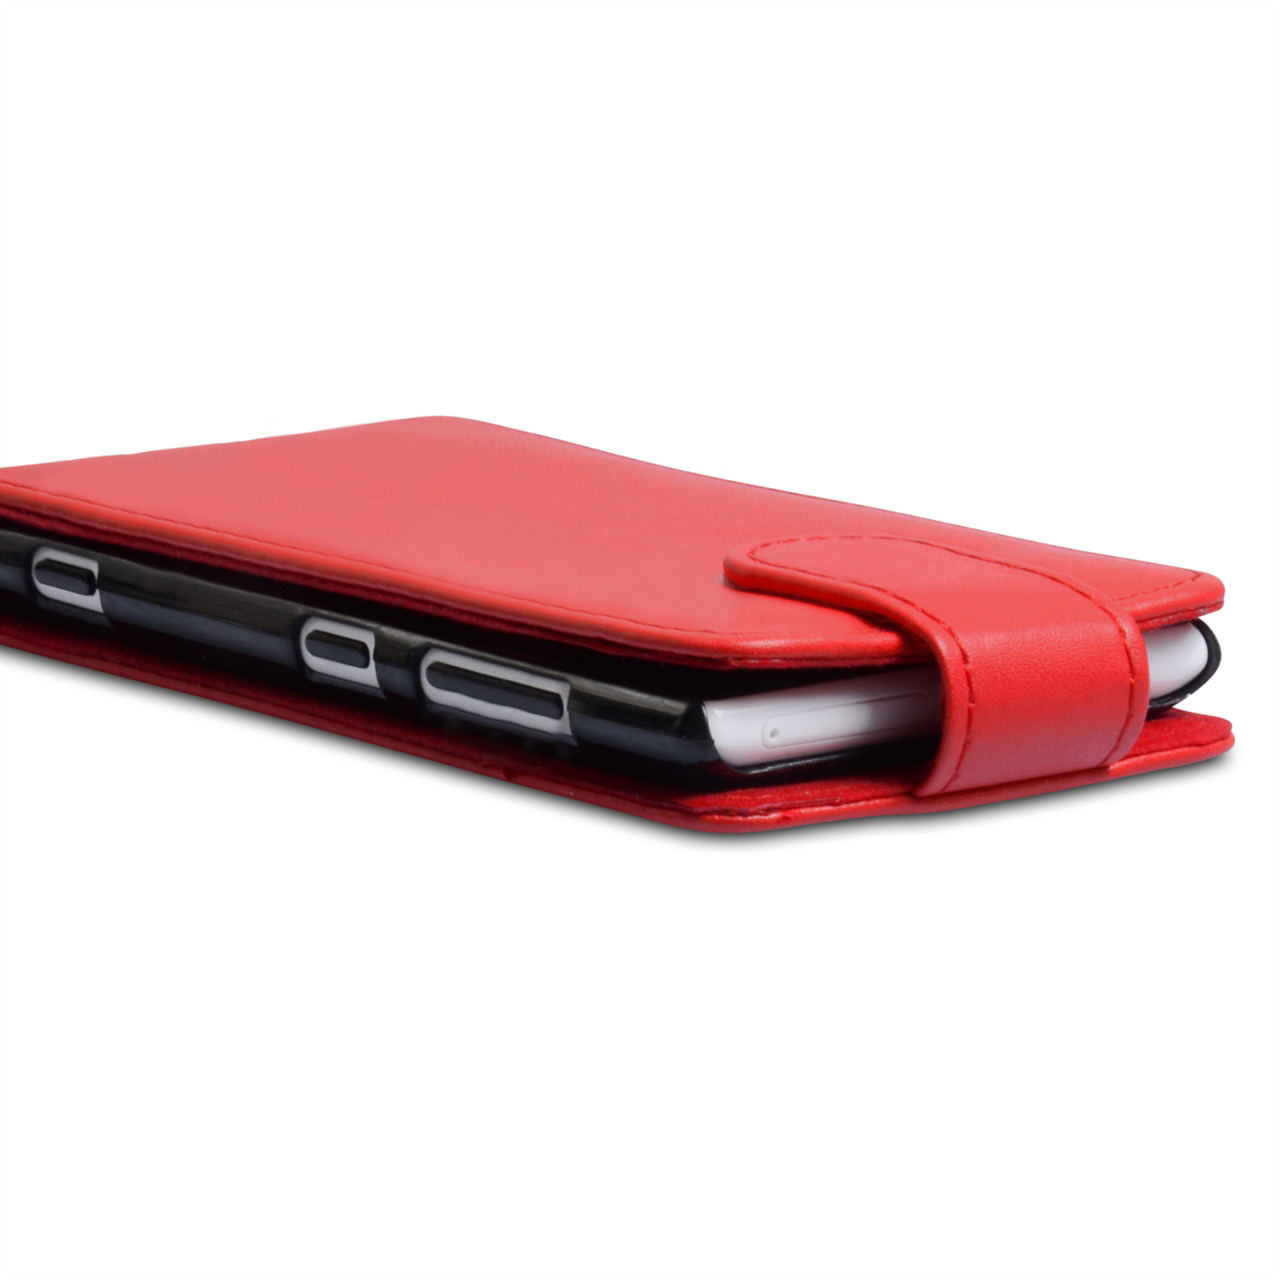 YouSave Accessories Nokia Lumia 720 Red Leather Effect Flip Case